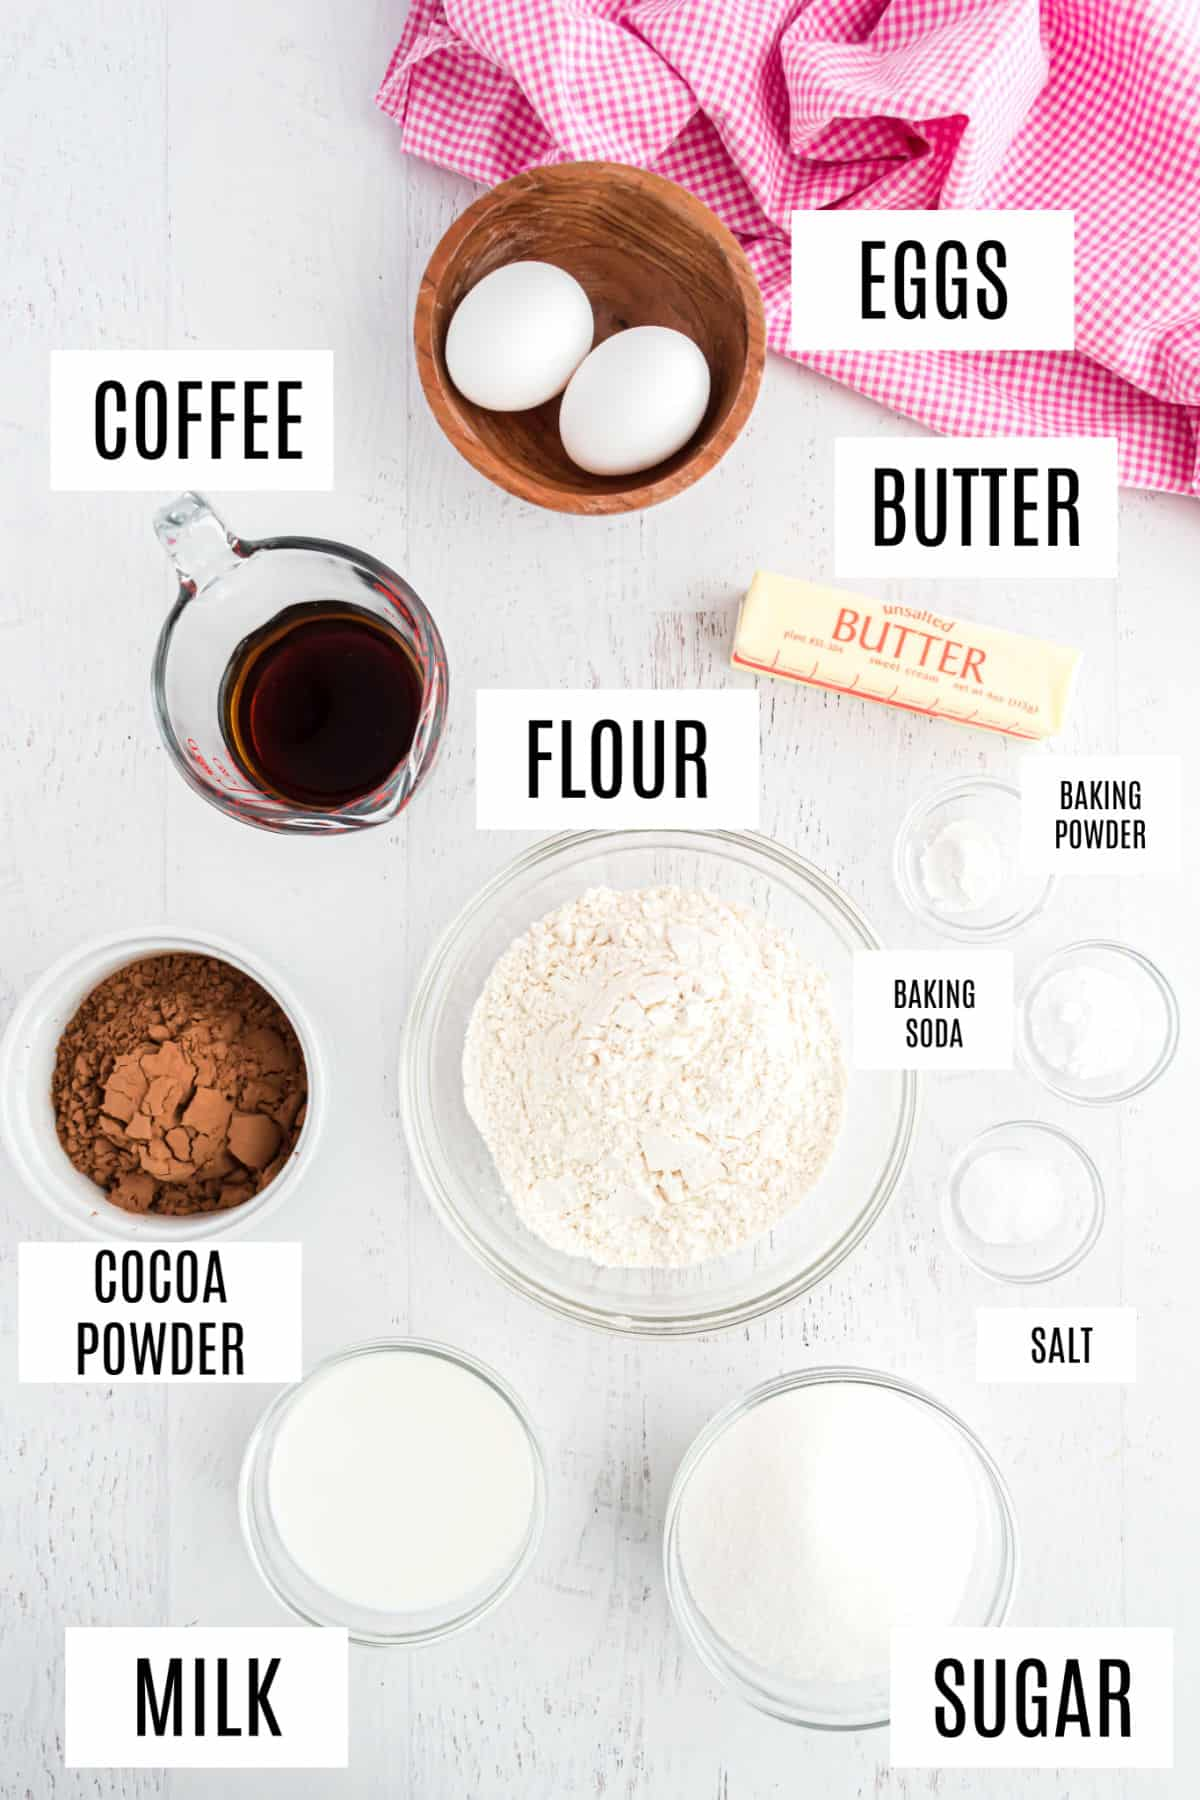 Ingredients needed to make the most amazing chocolate cake recipe.